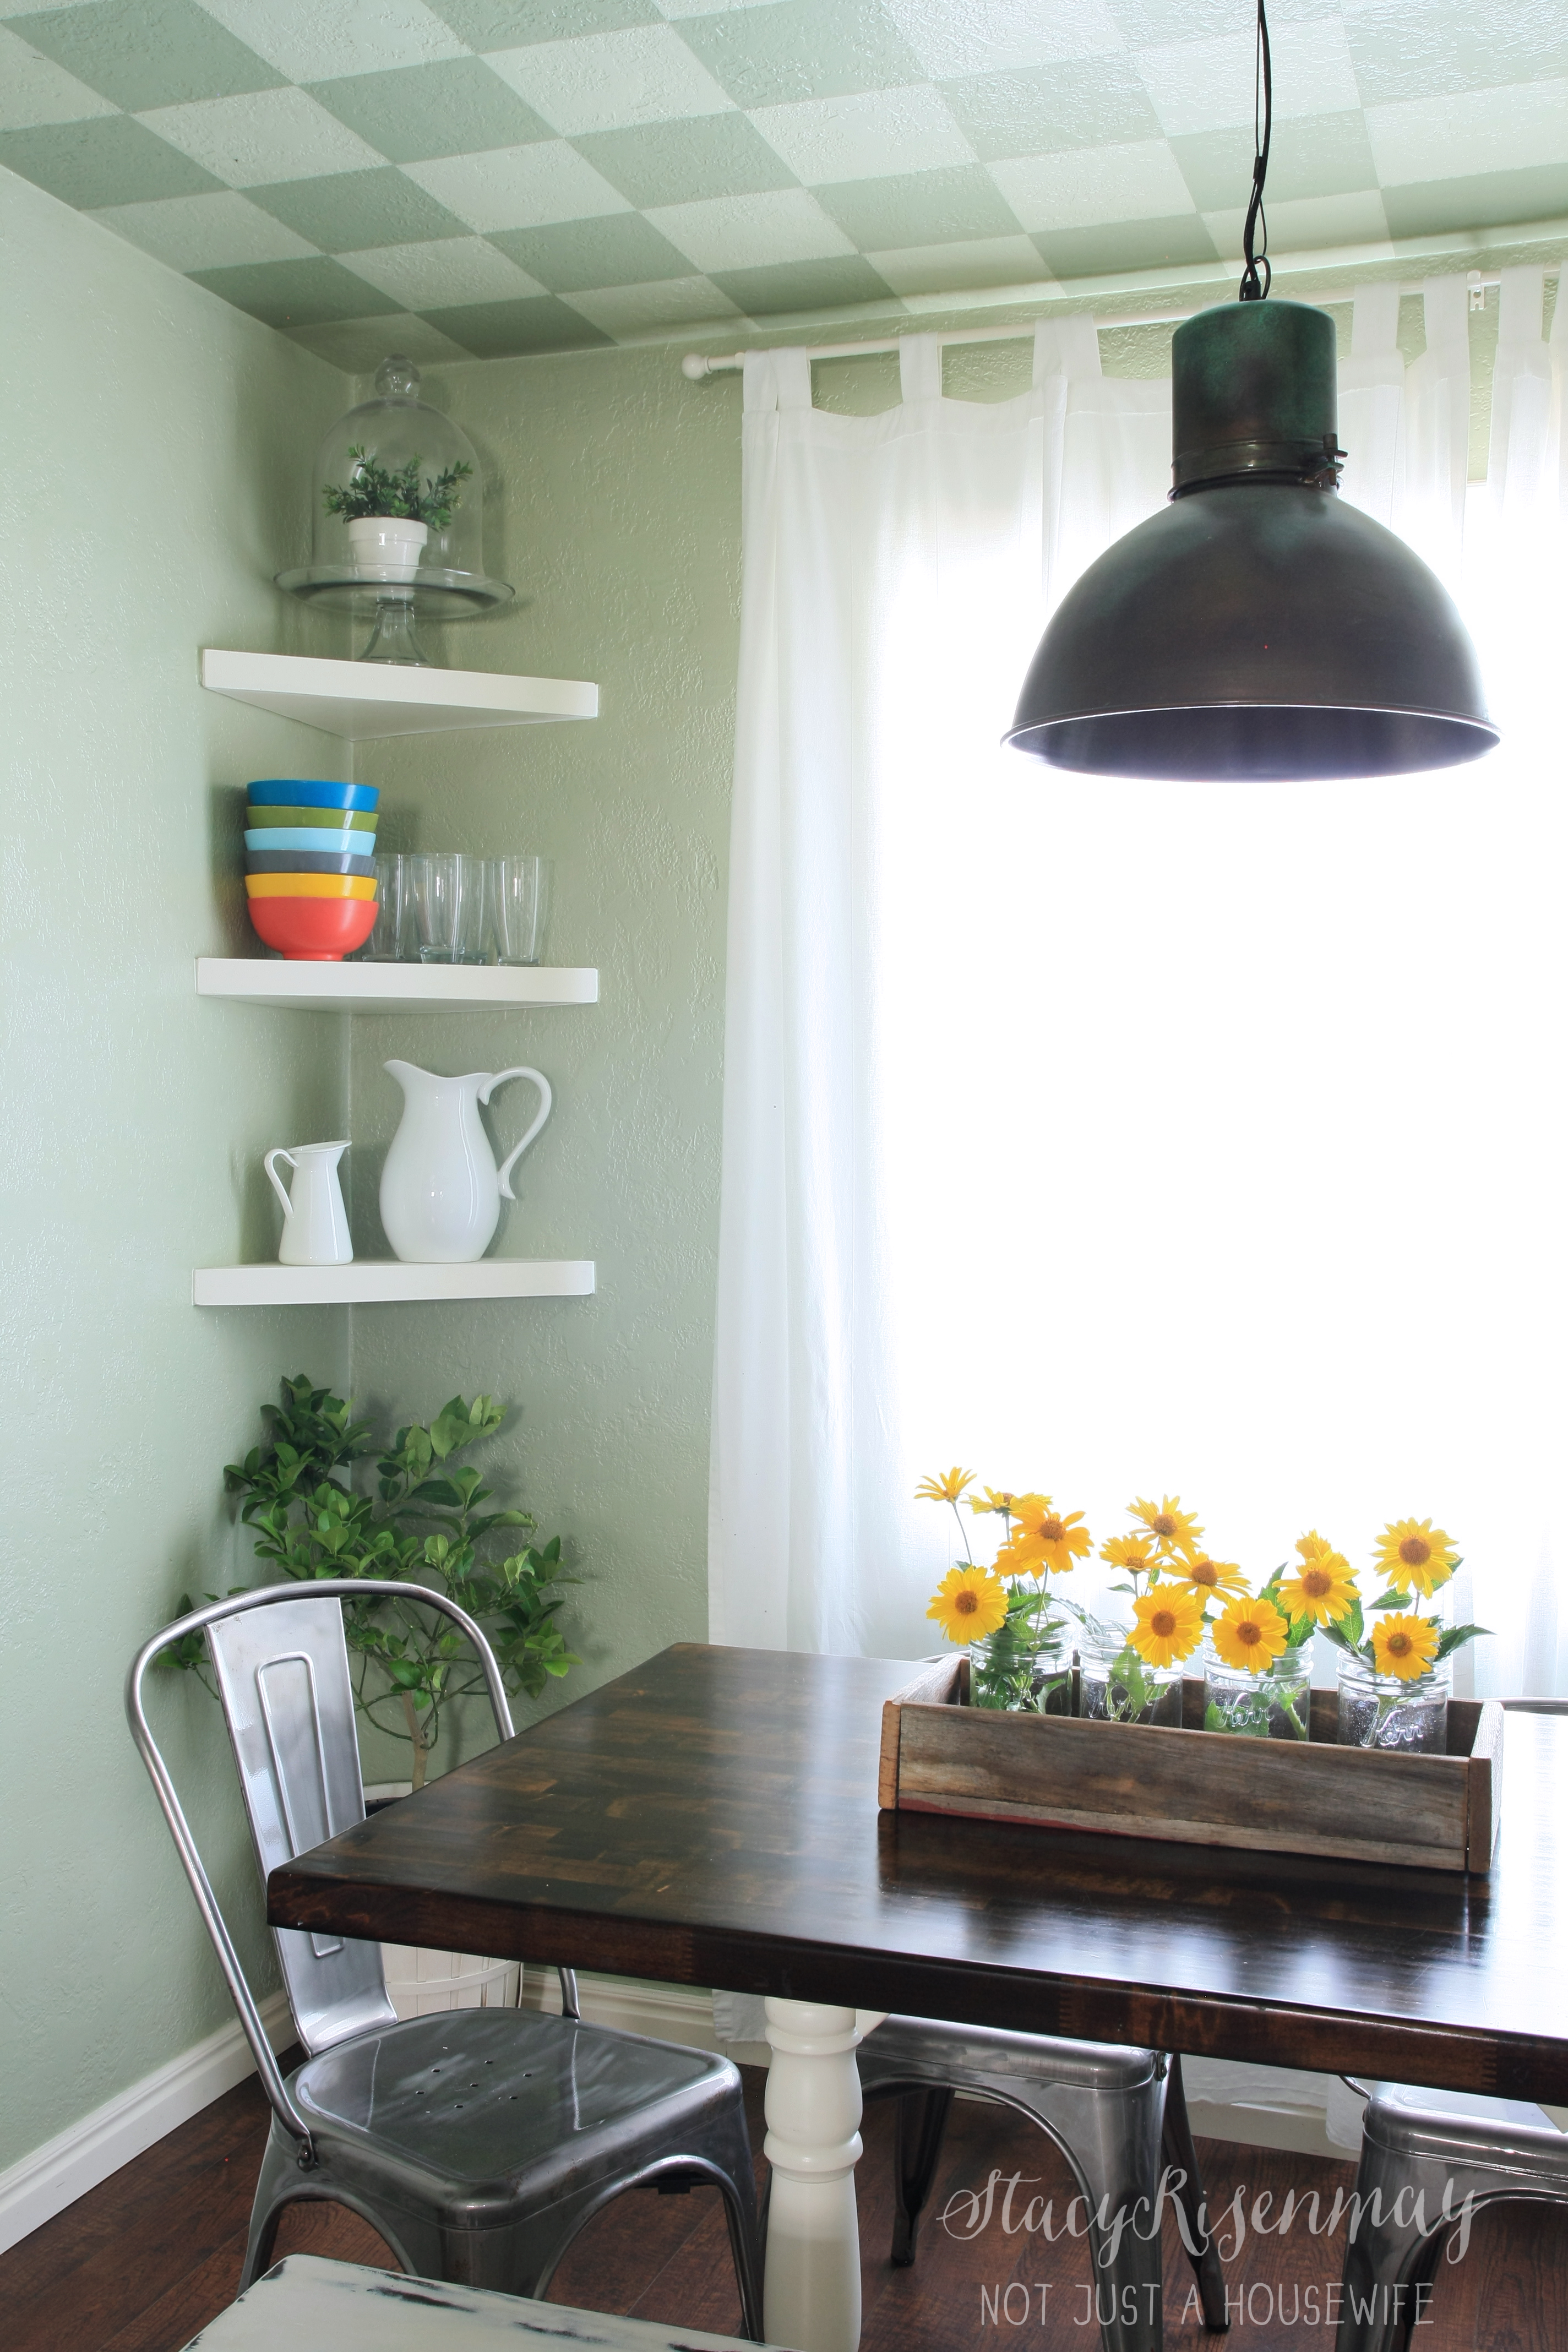 The Story of My Mismatched Chairs - Stacy Risenmay